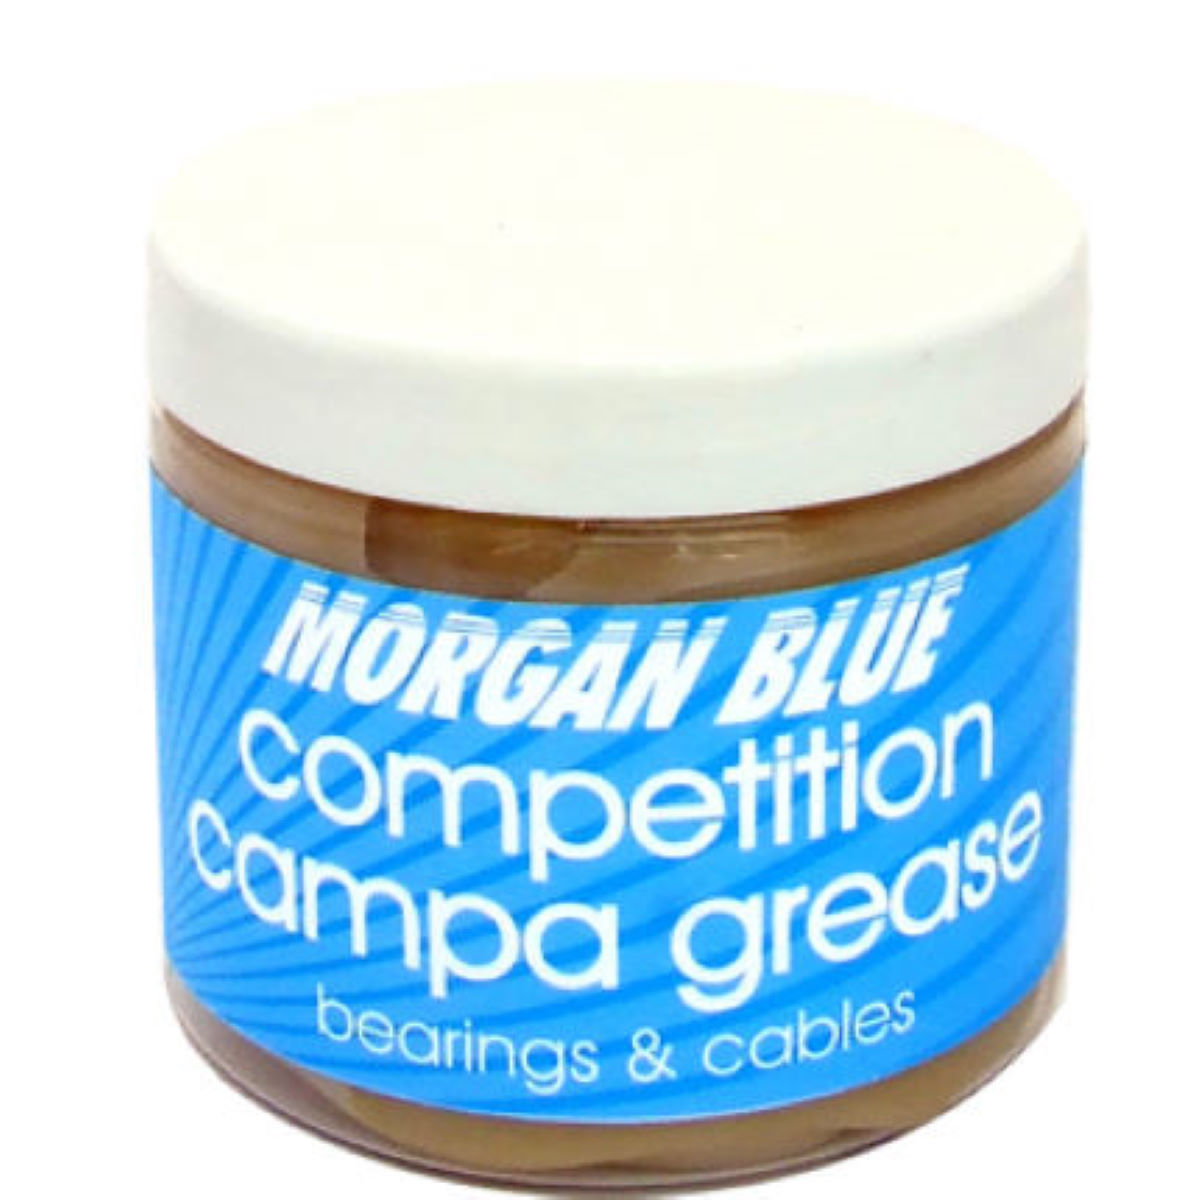 Graisse Morgan Blue Competition Campa (200 ml) - 200ml Graisse